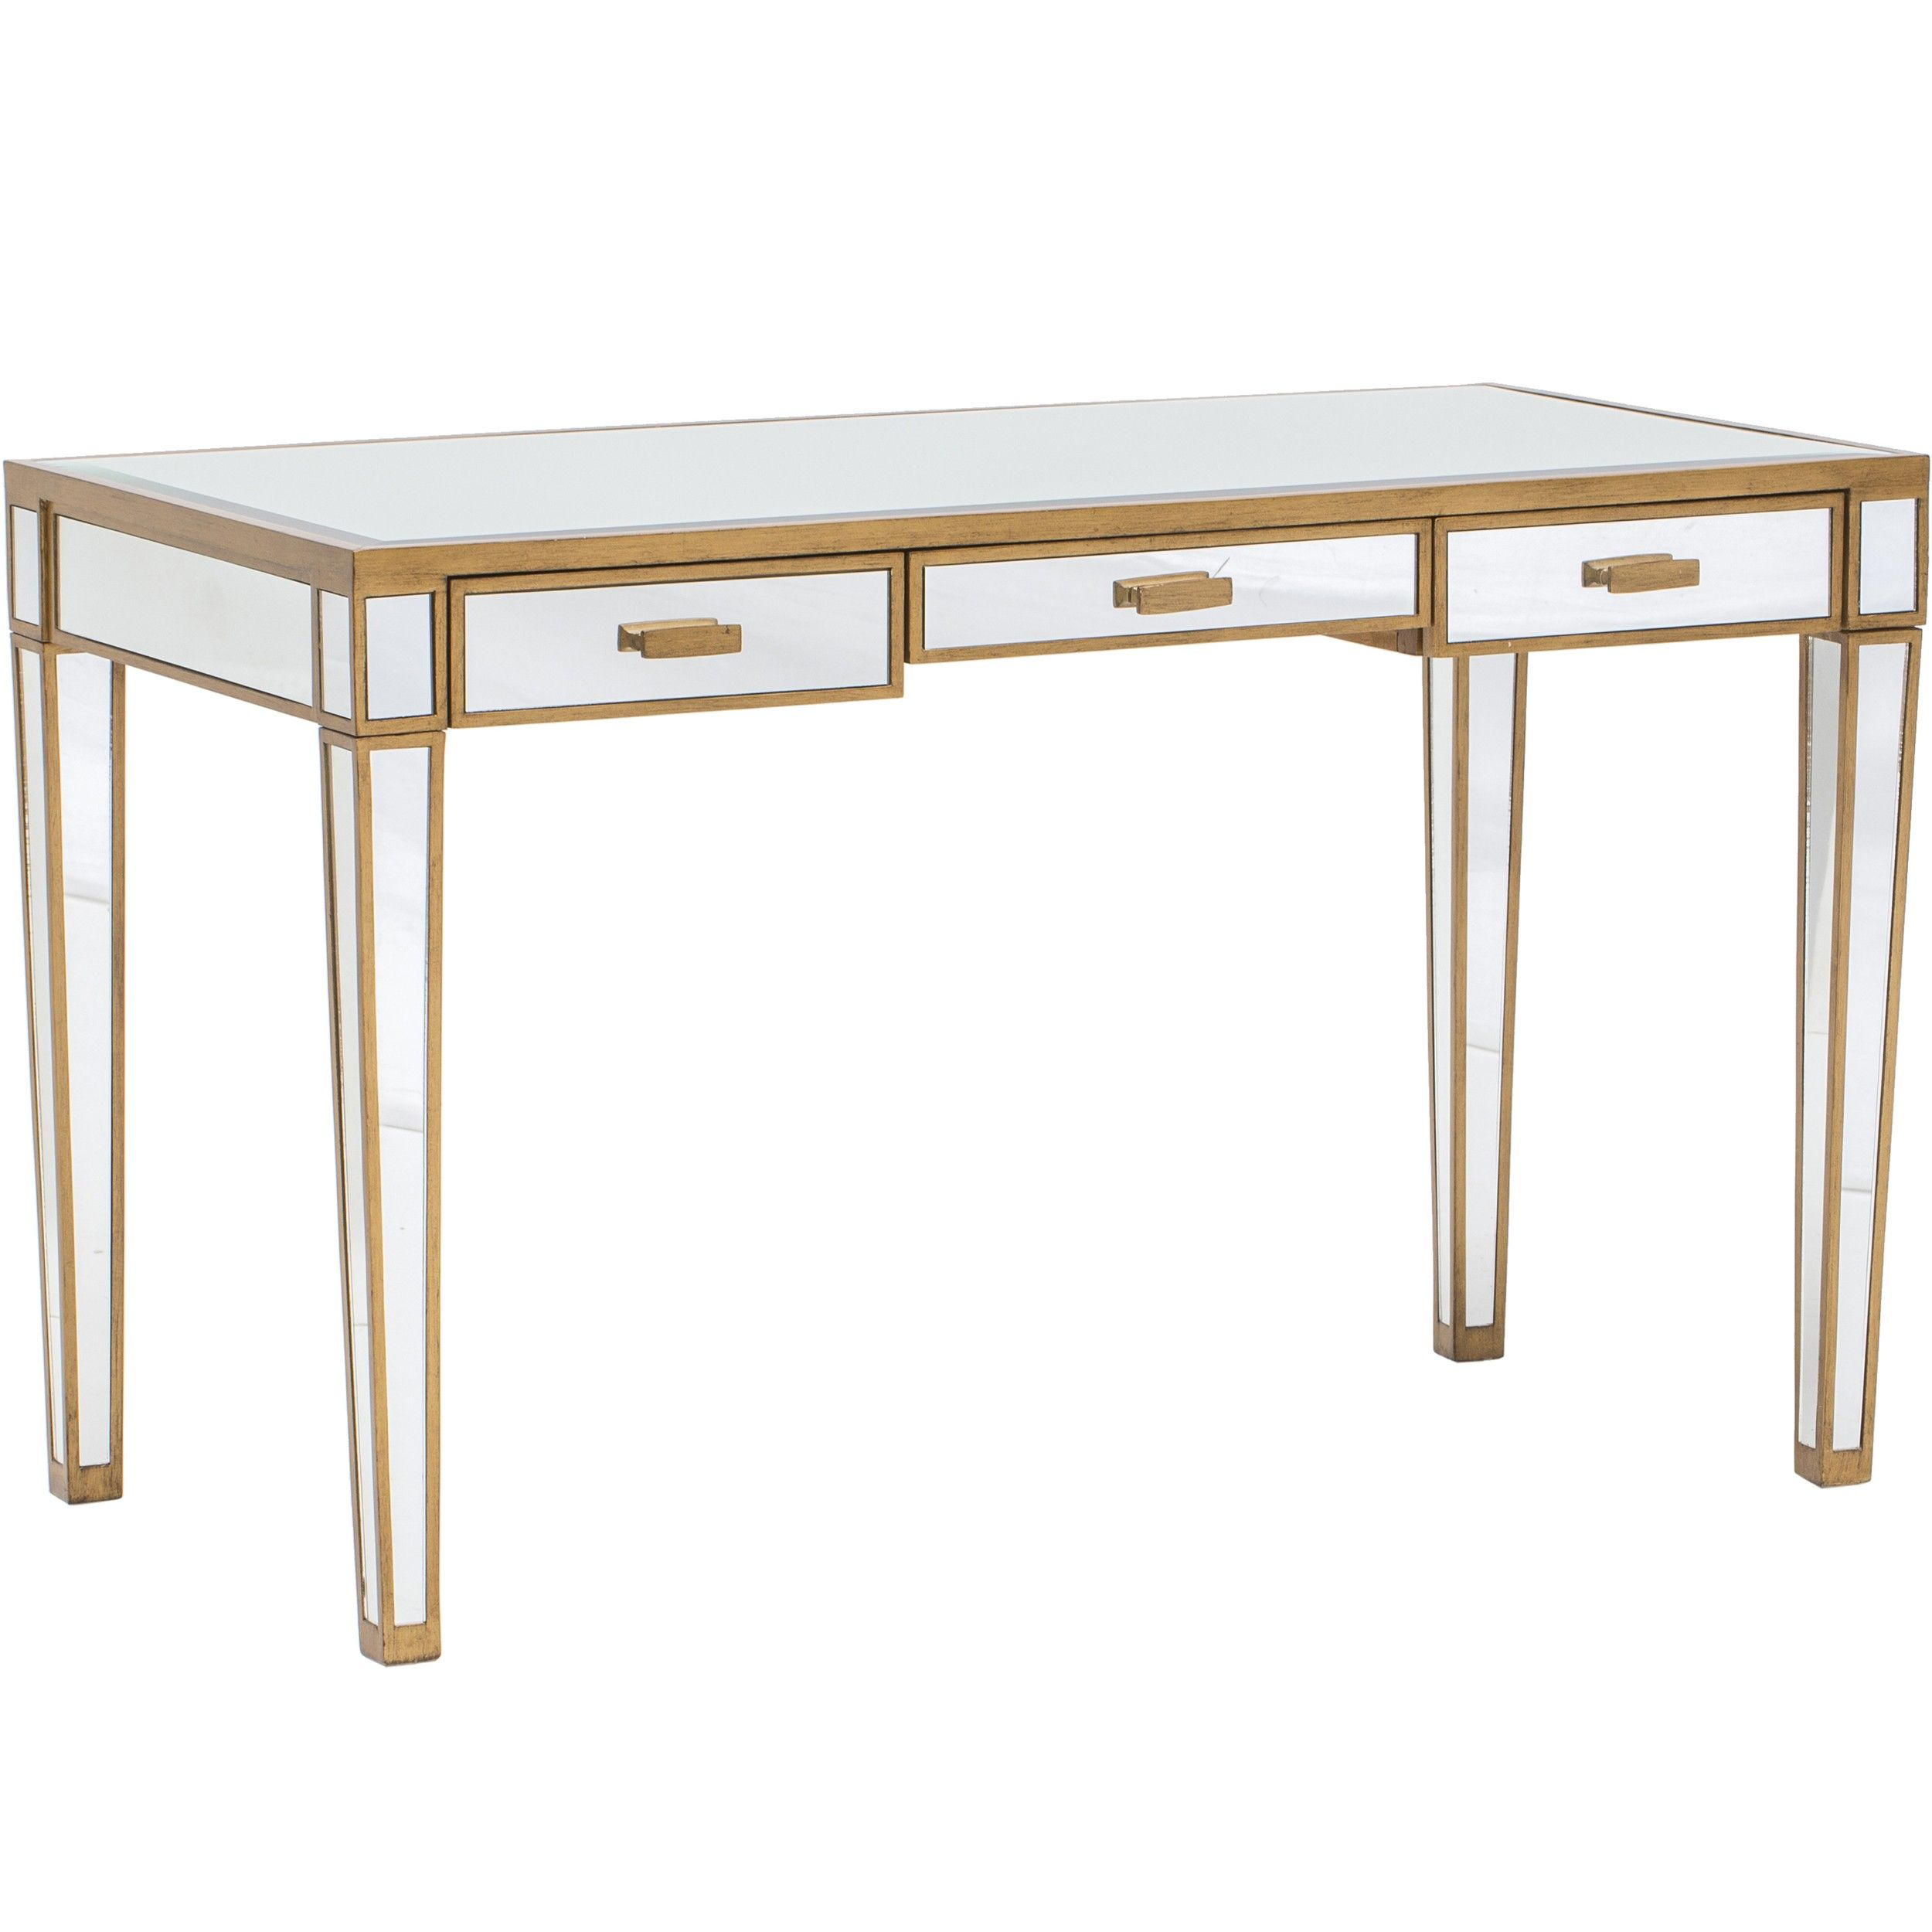 ikea makeup vanity fresh posh desk distinguished wa along for mirror photo home lbt with also lights catchy images superb